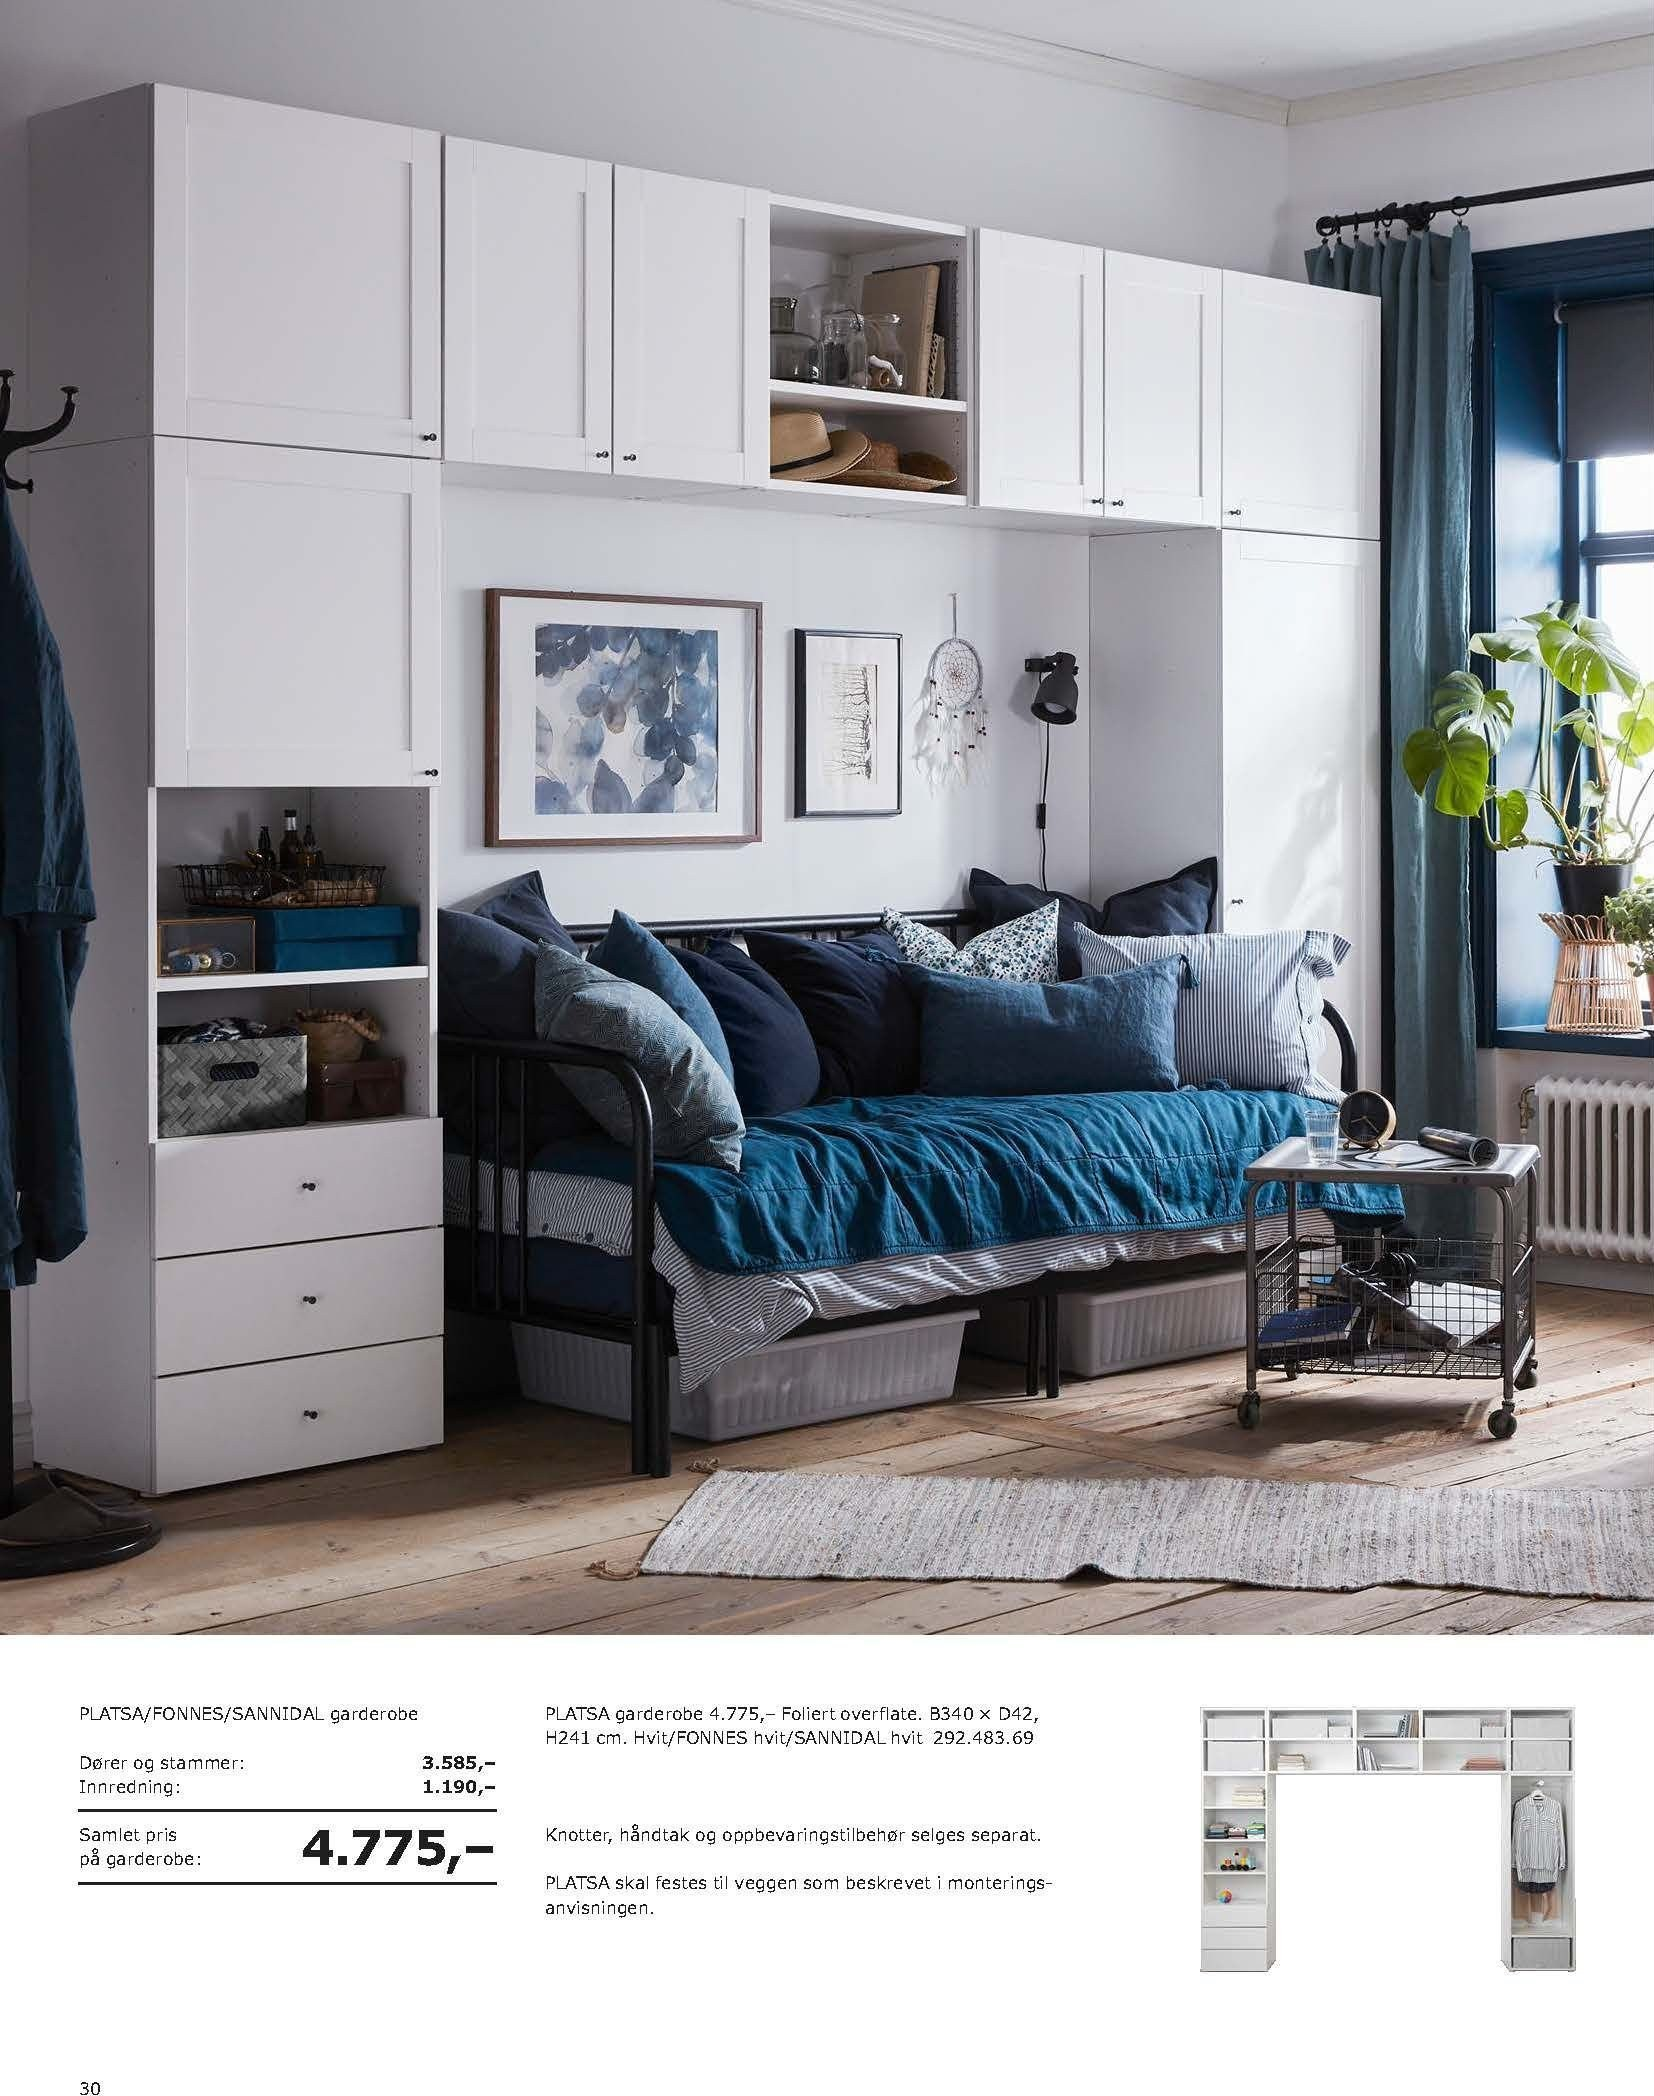 Kundeavis IKEA - 20.08.2018 - 11.08.2019. Side 30.